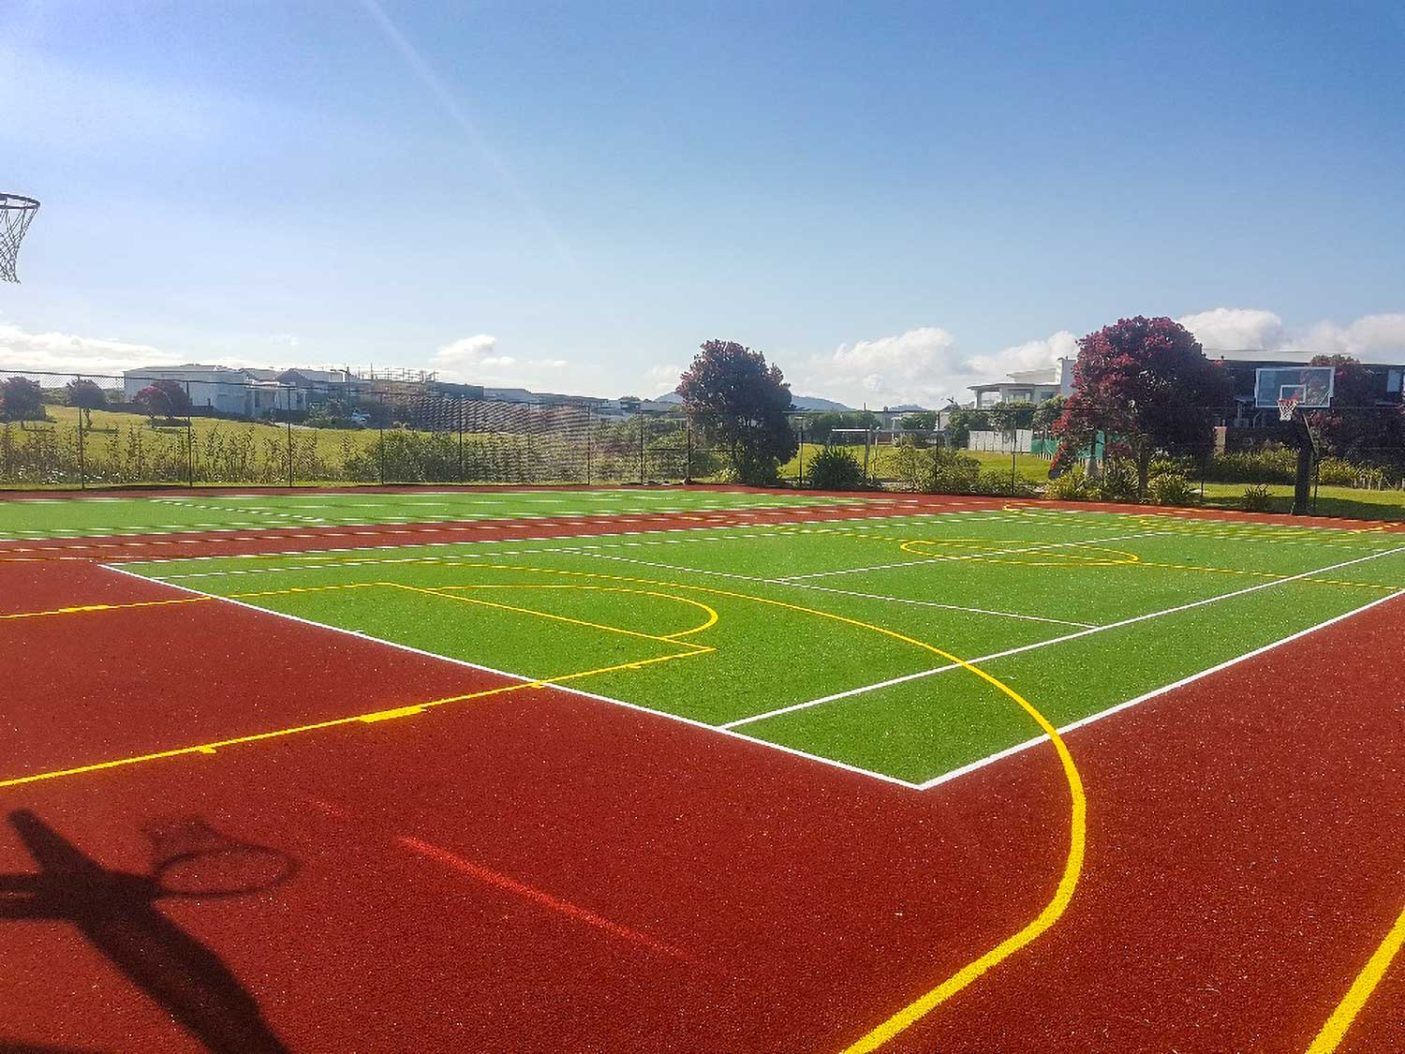 Omaha Tennis synthetic turf